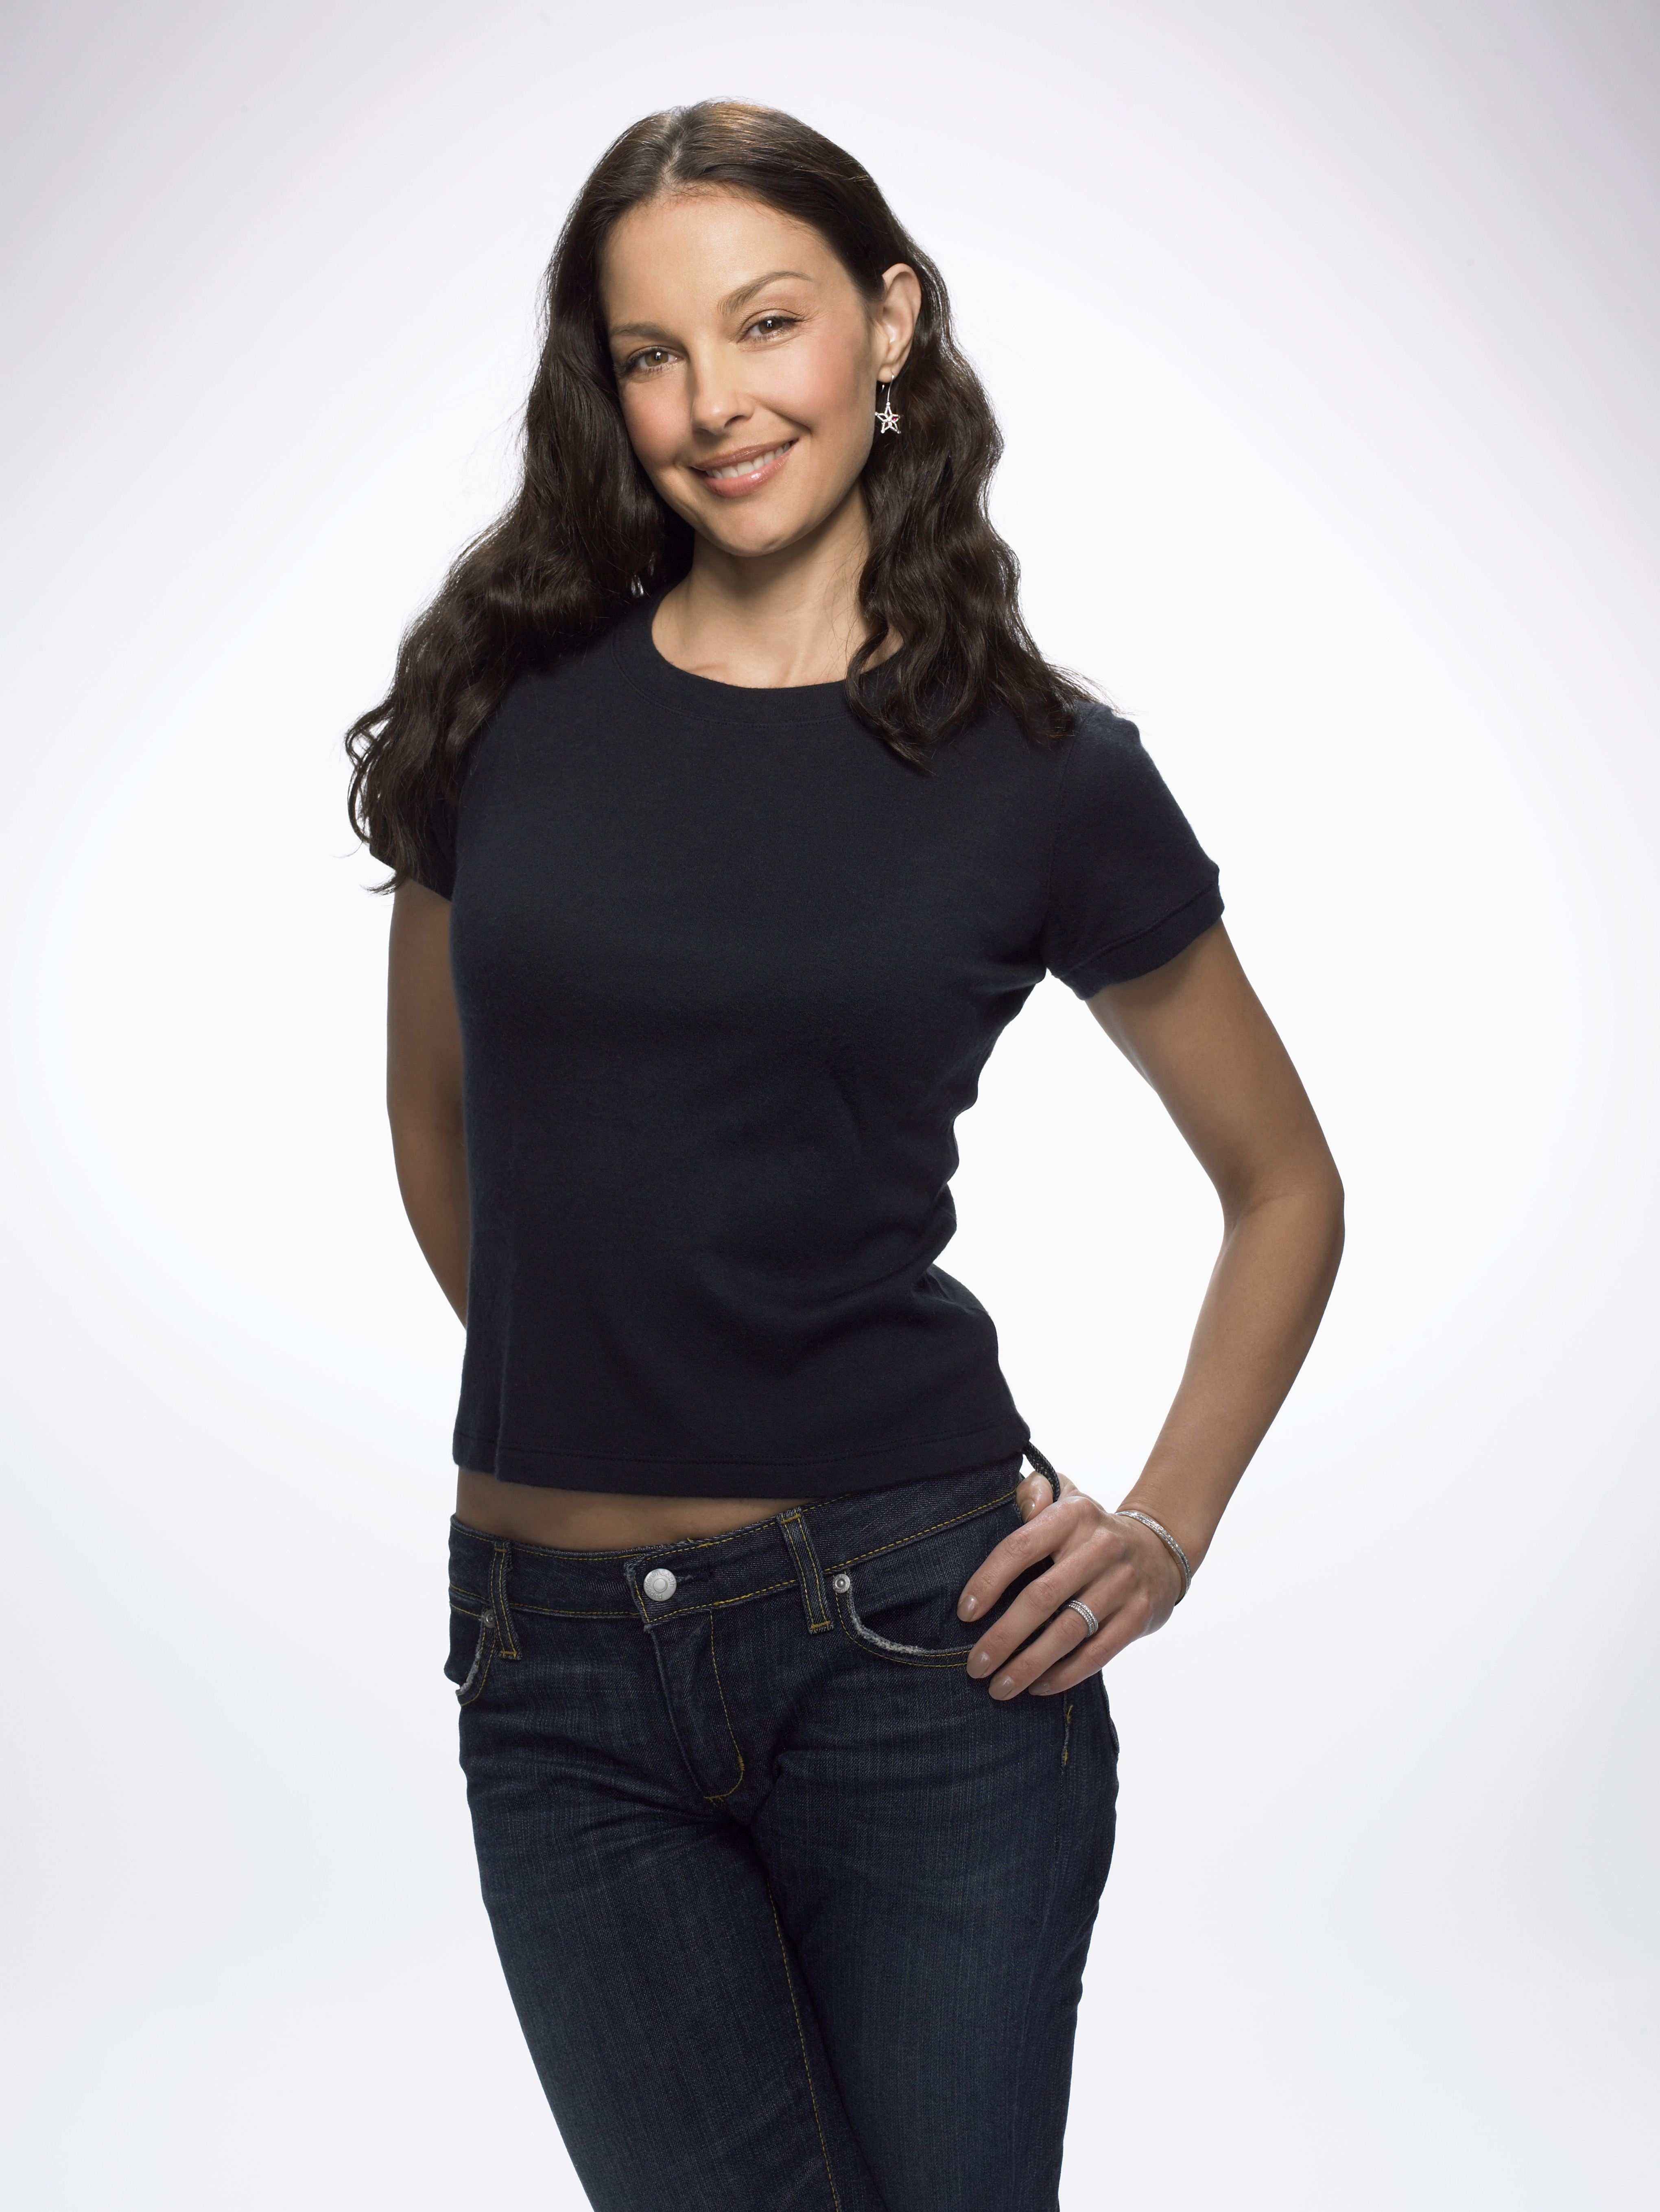 Ashley judd tight jeans — 2